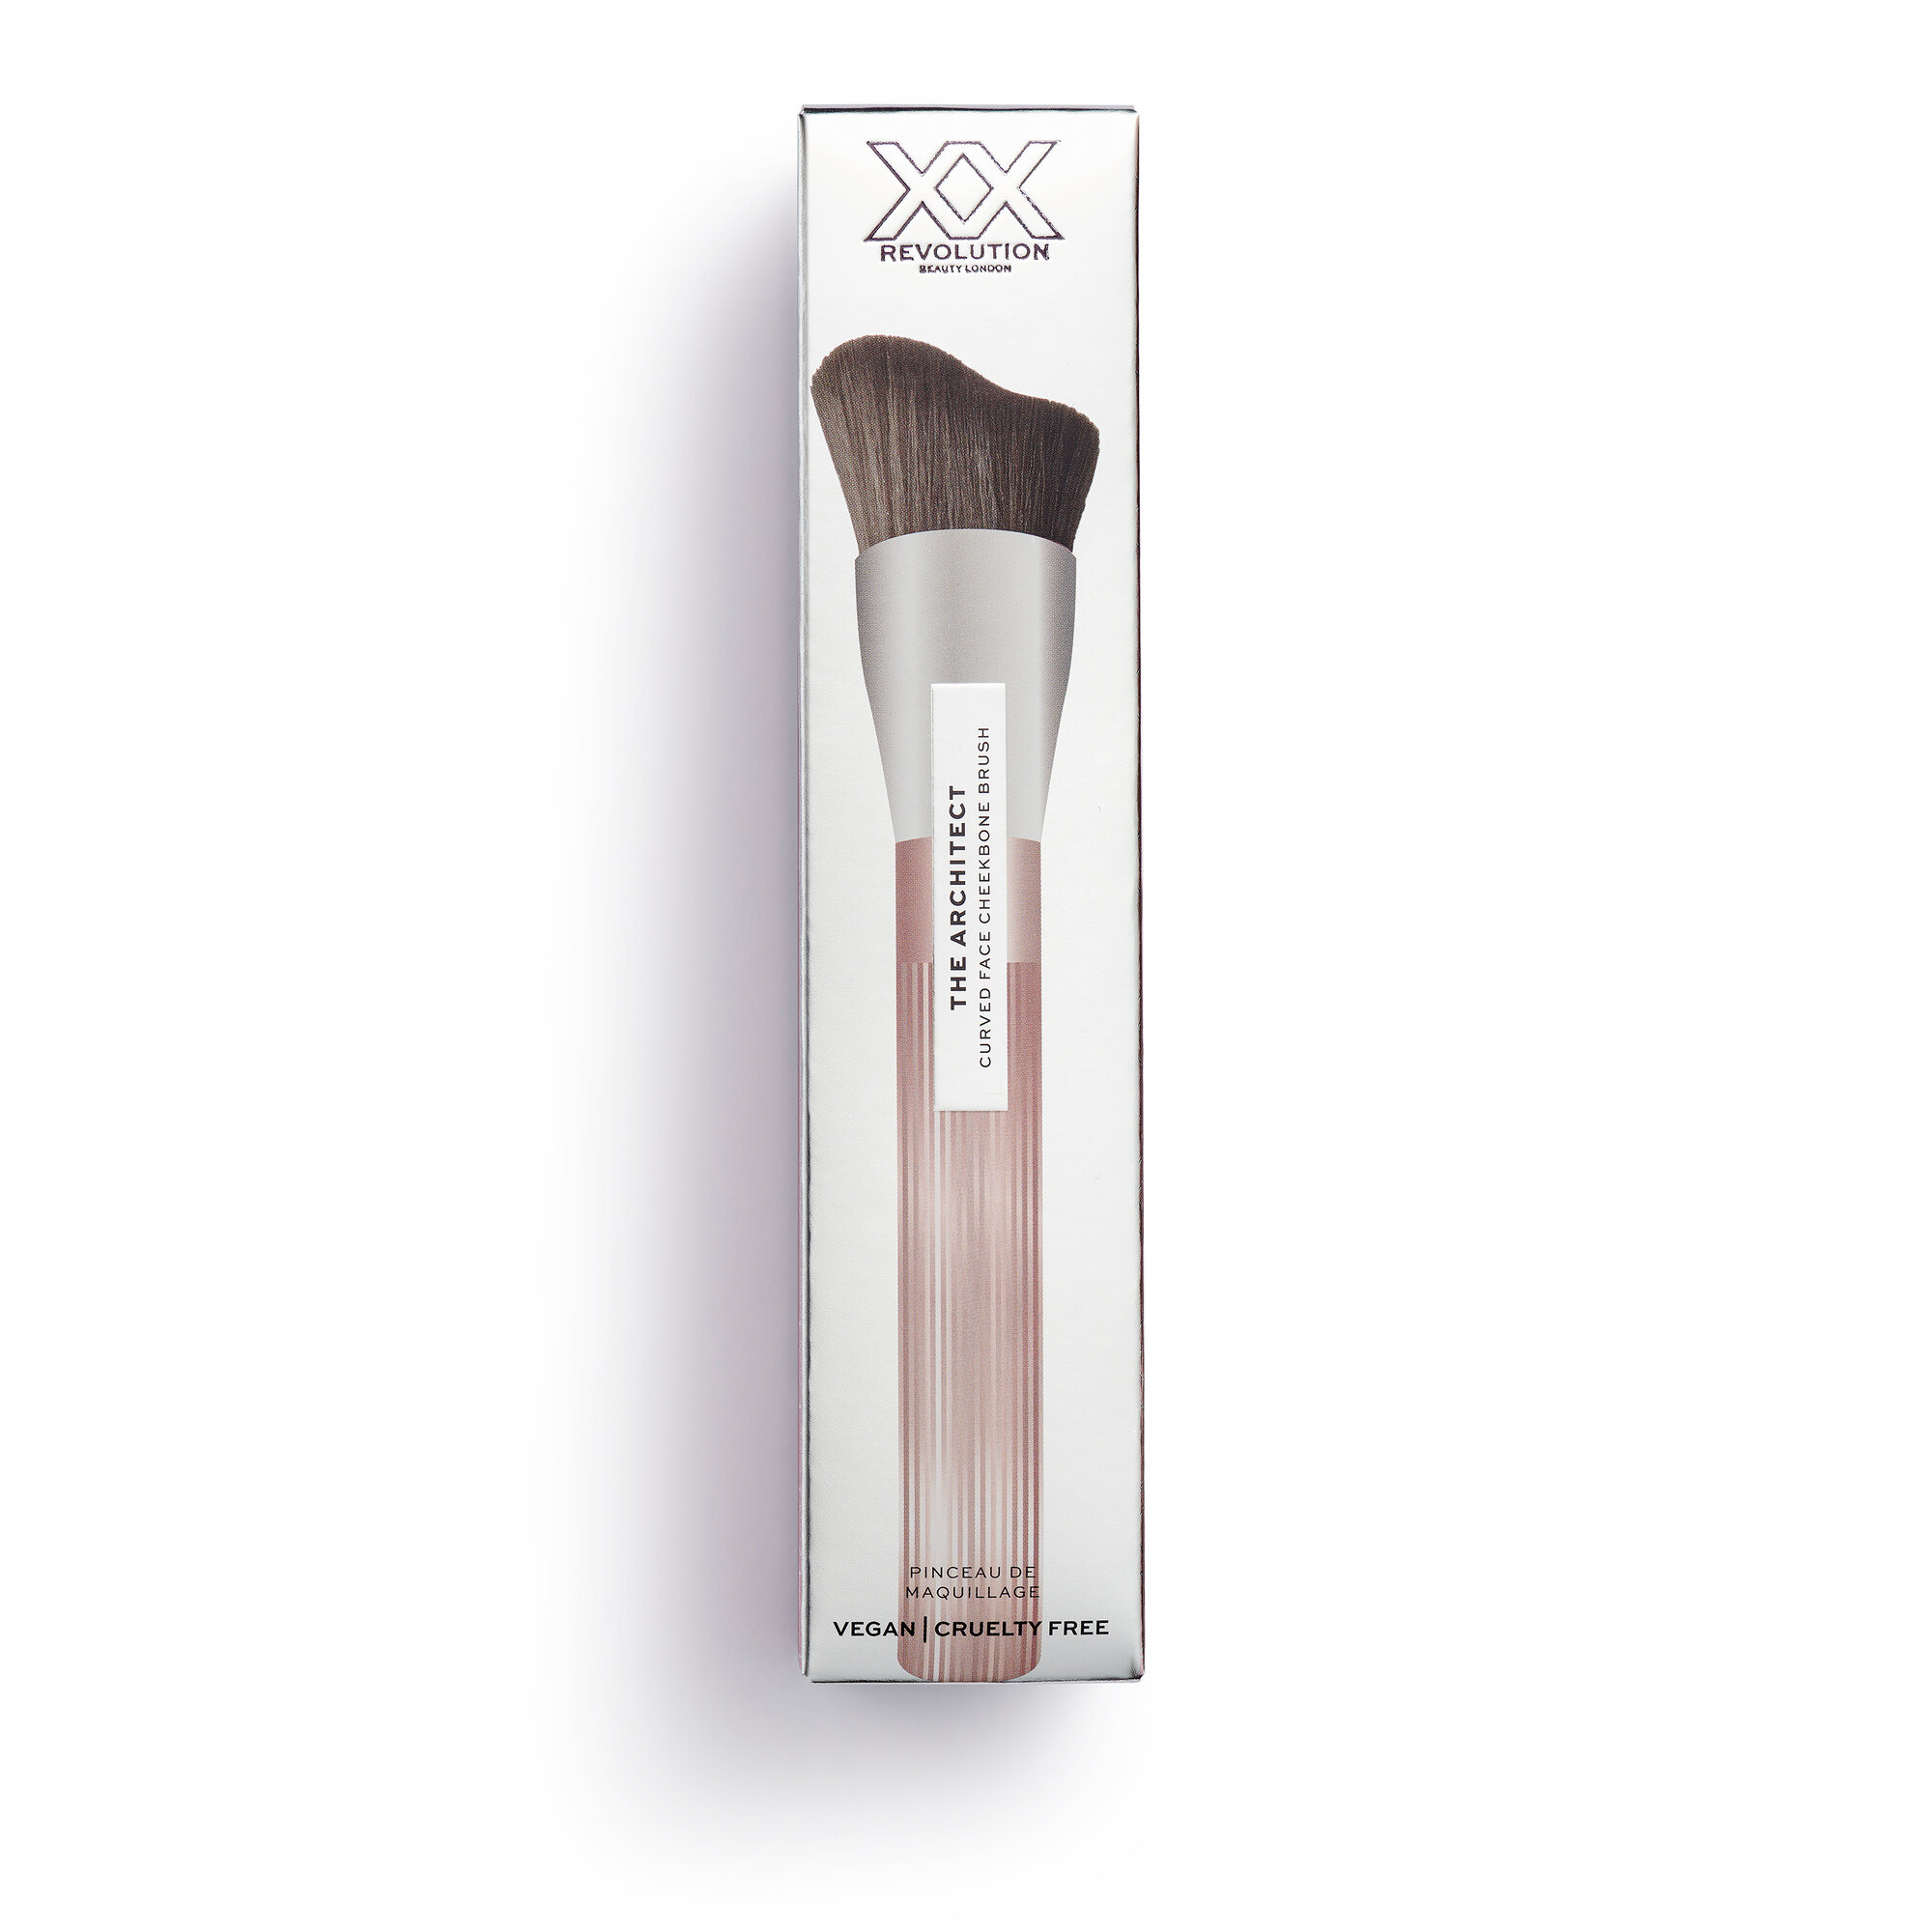 XX Revolution XXpert Brushes 'The Architect' Curved Face Cheekbone Brush